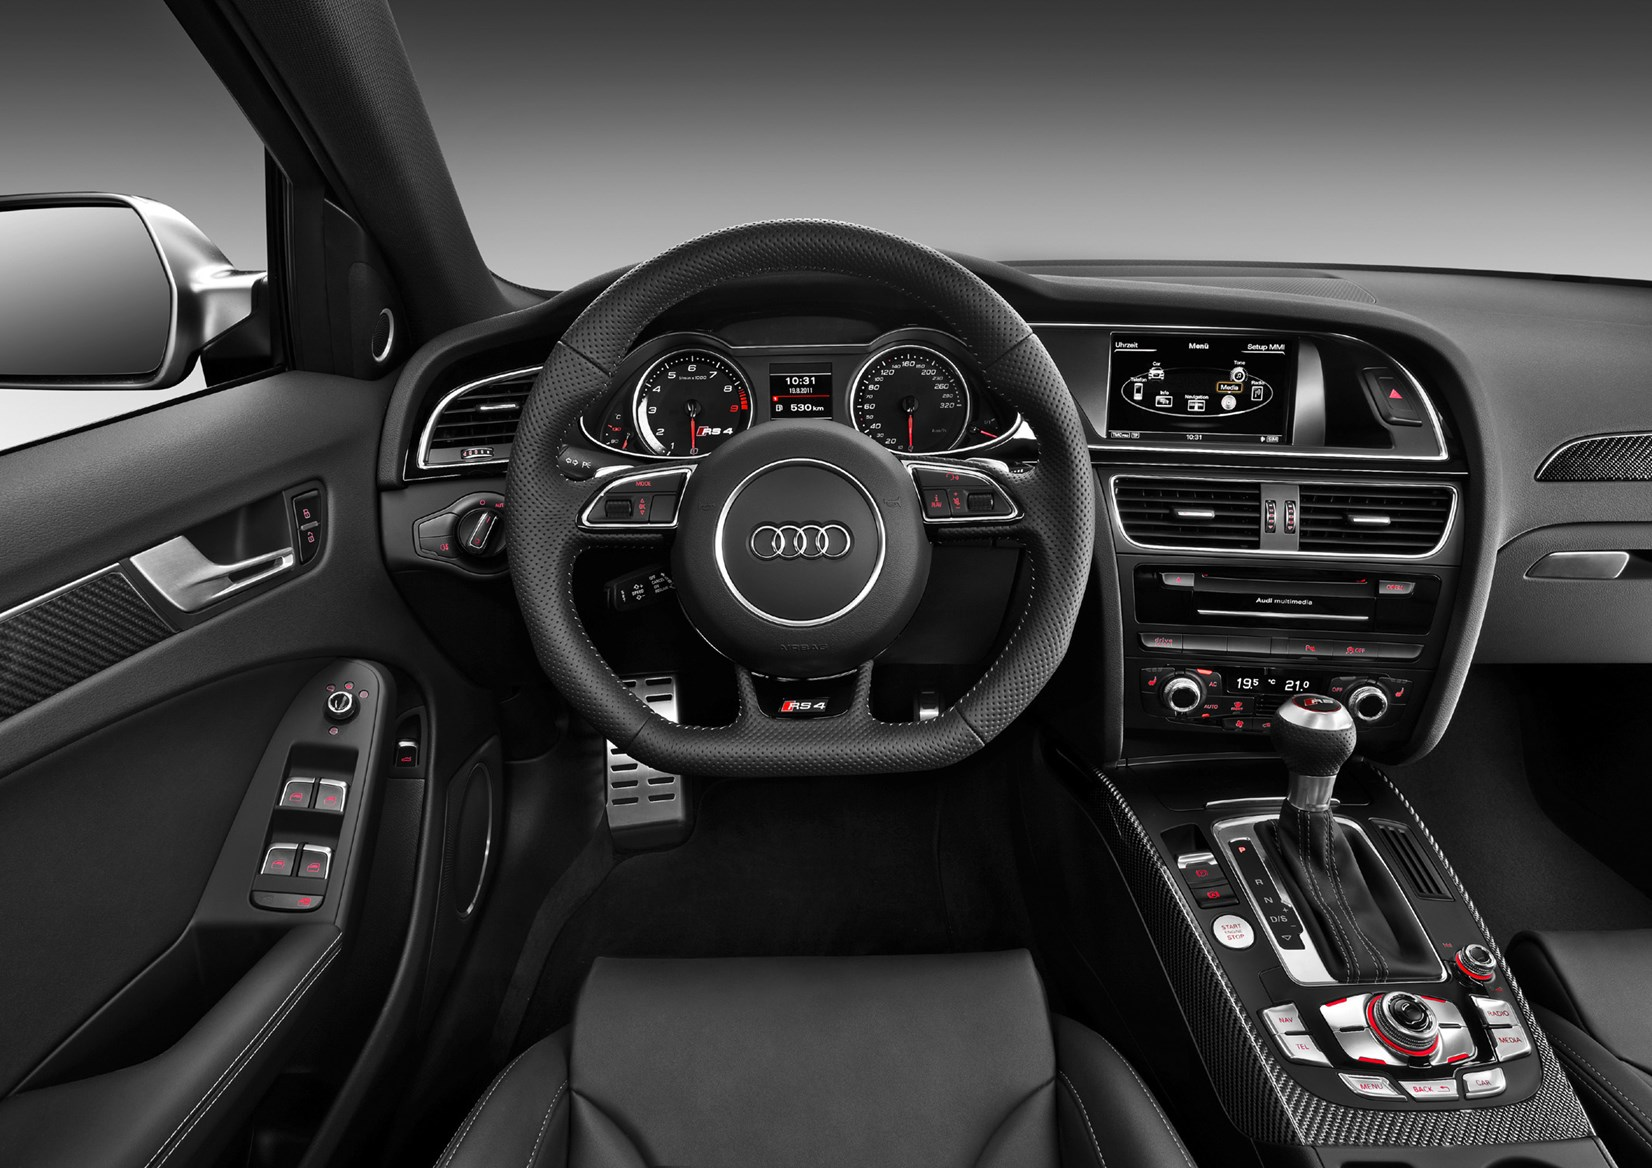 audi a4 interior 2012. view all images of the audi a4 rs4 avant 1215 interior 2012